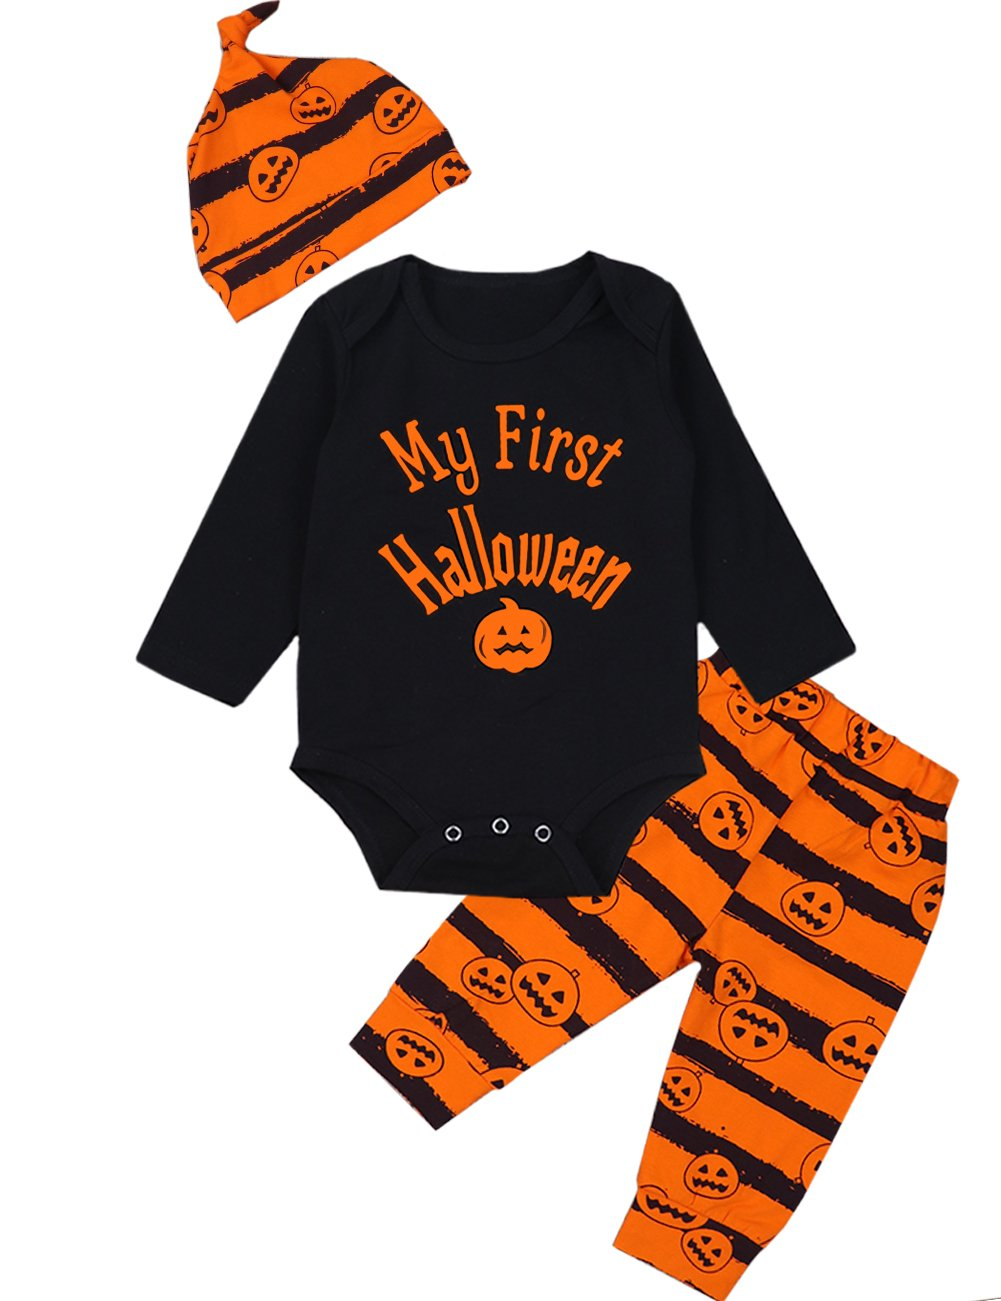 3Pcs/ Outfit Set Baby Boy Girl Infant My First Halloween Rompers(3-6 Months)